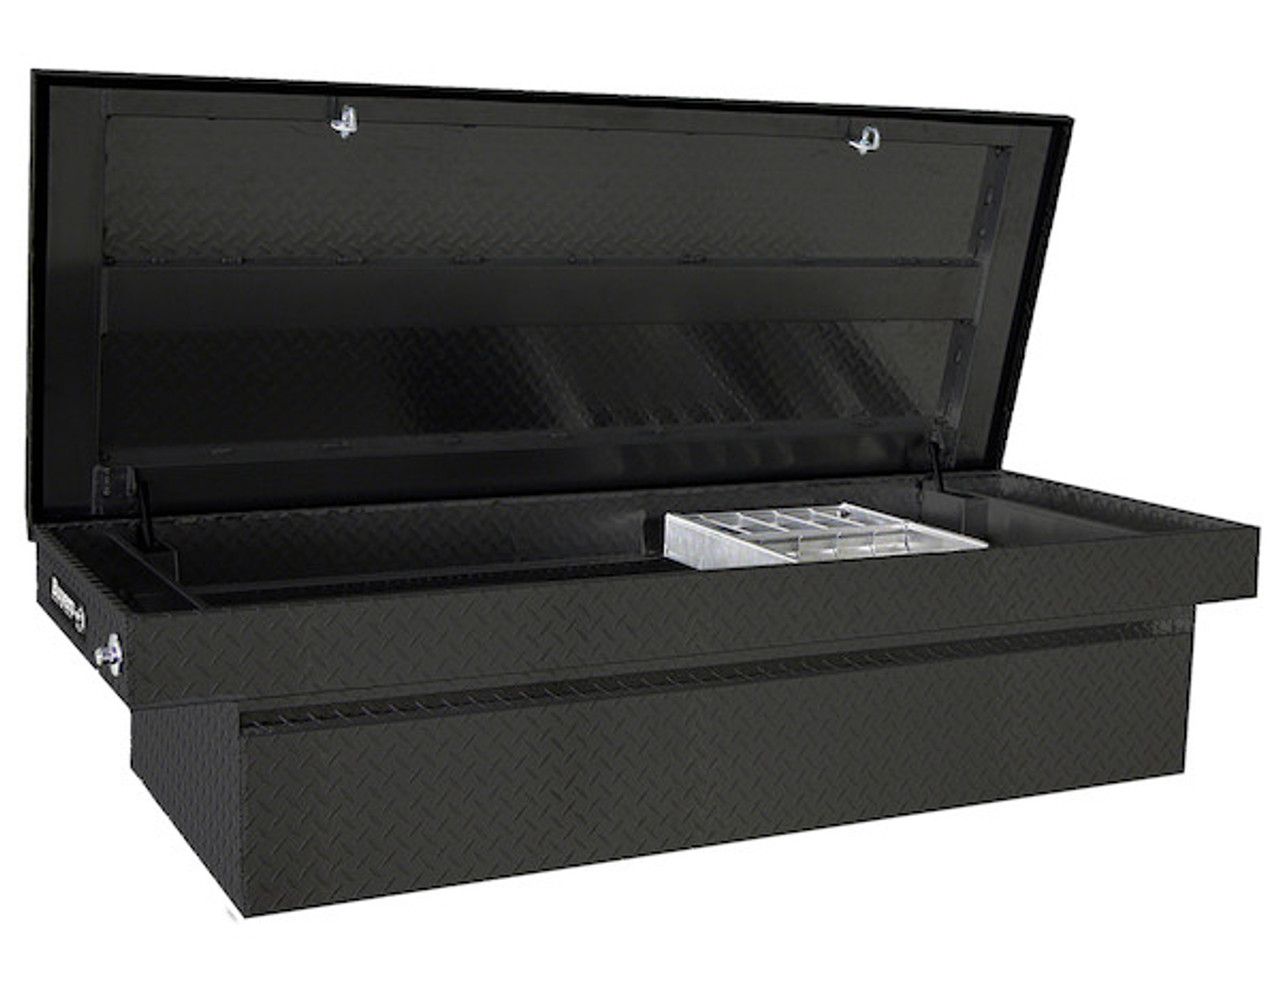 "1729425 BUYERS PRODUCTS BLACK DIAMOND TREAD ALUMINUM CROSSOVER TRUCK TOOLBOX 23""HX27""DX71""W"